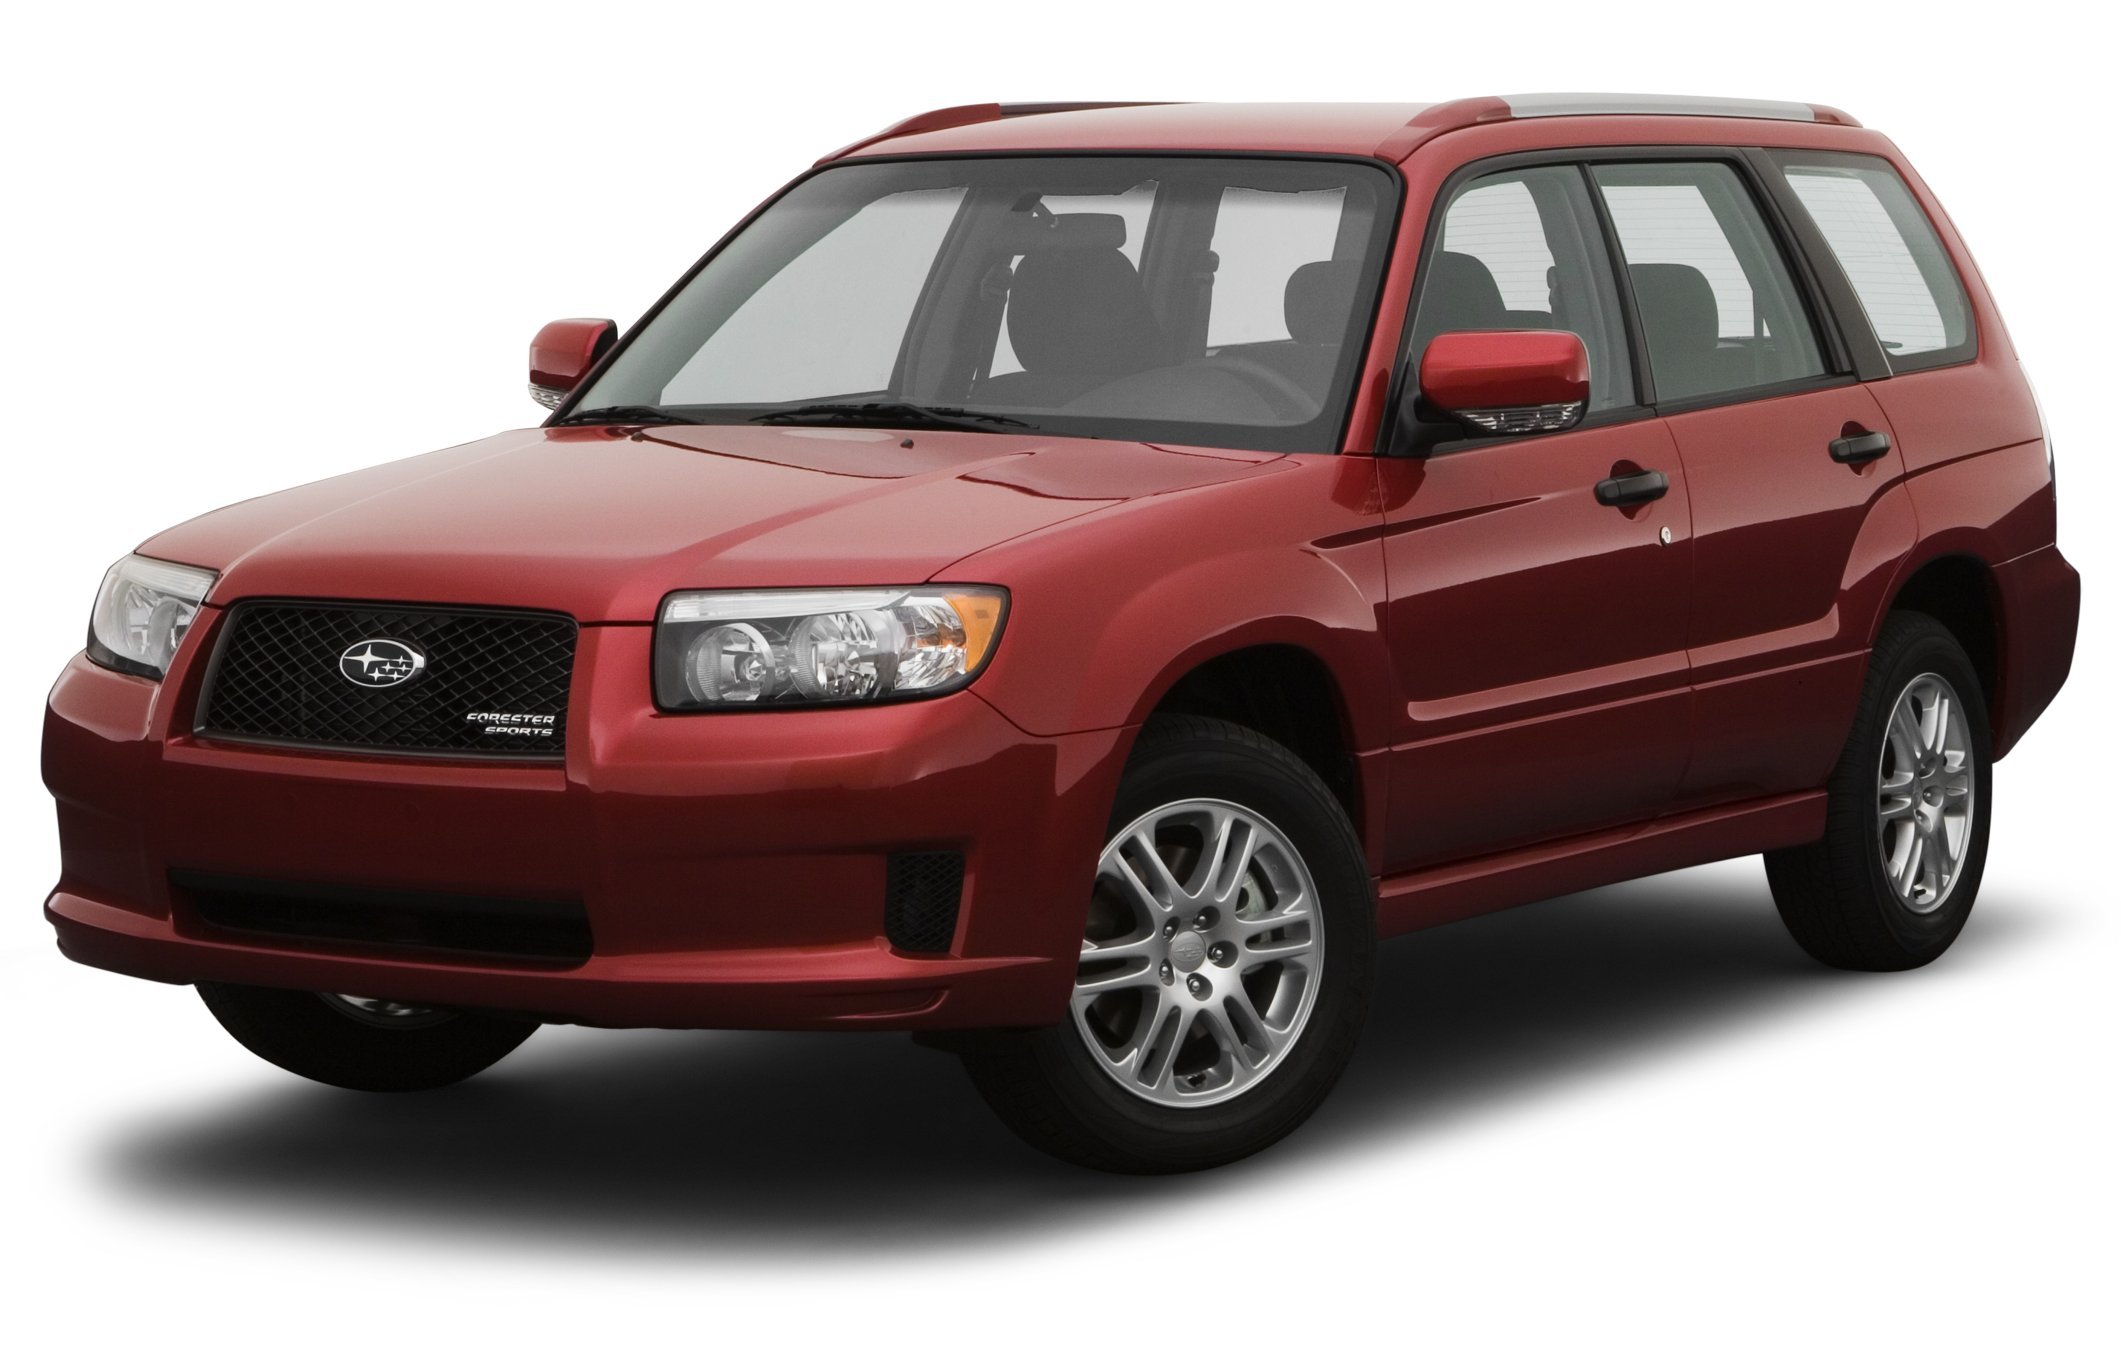 Amazon 2008 subaru forester reviews images and specs vehicles 2008 subaru forester sports x 4 door automatic transmission vanachro Images